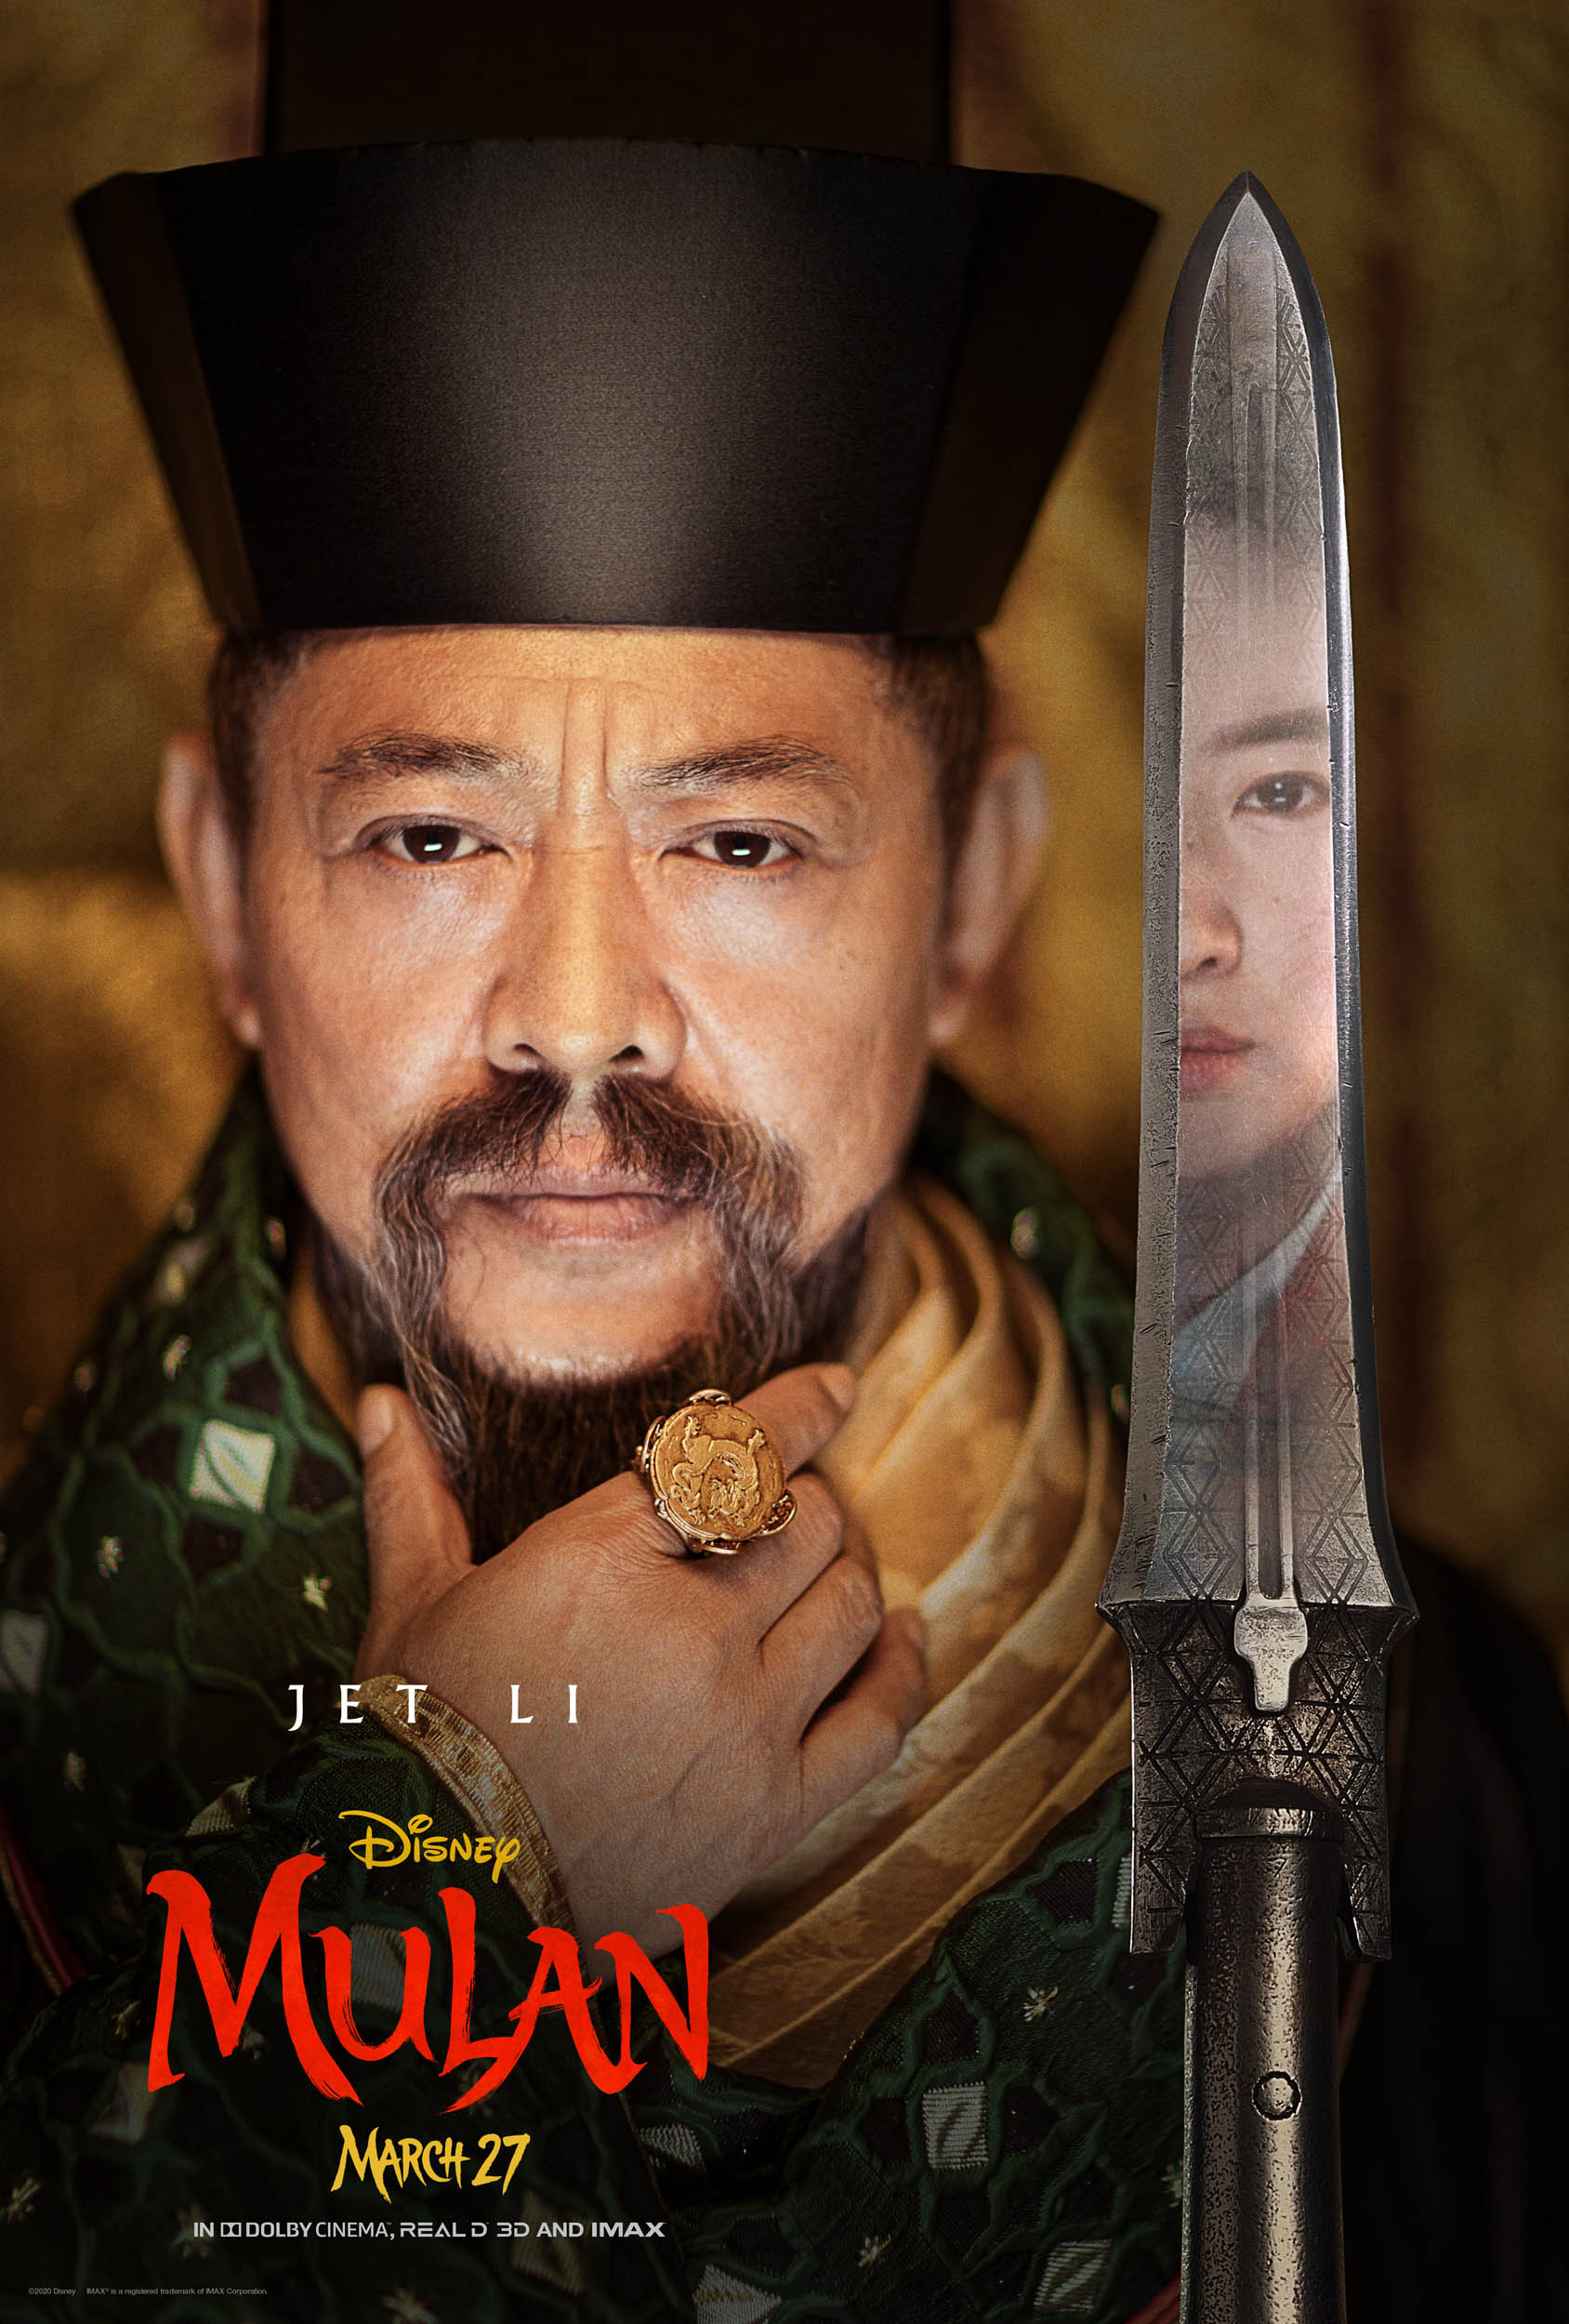 Jet Li as The Emperor of China Disney Mulan Character Posters